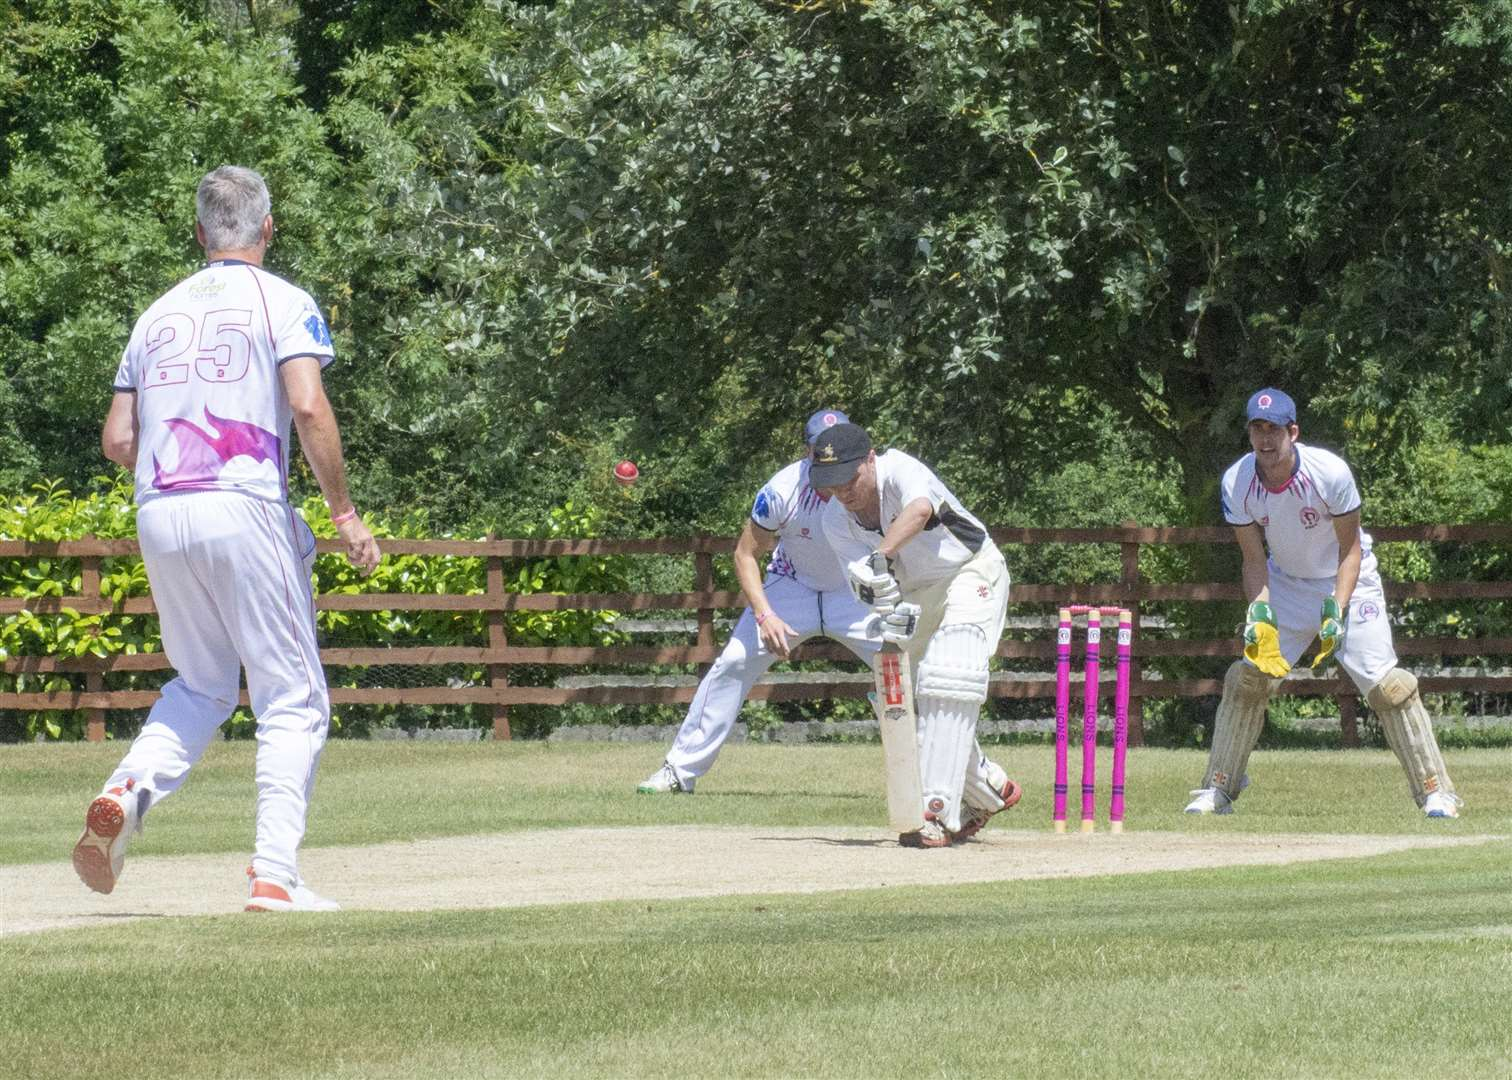 Ketton Sports 2nds v Nassington 2nds. Photo: Lee Hellwing (2715506)